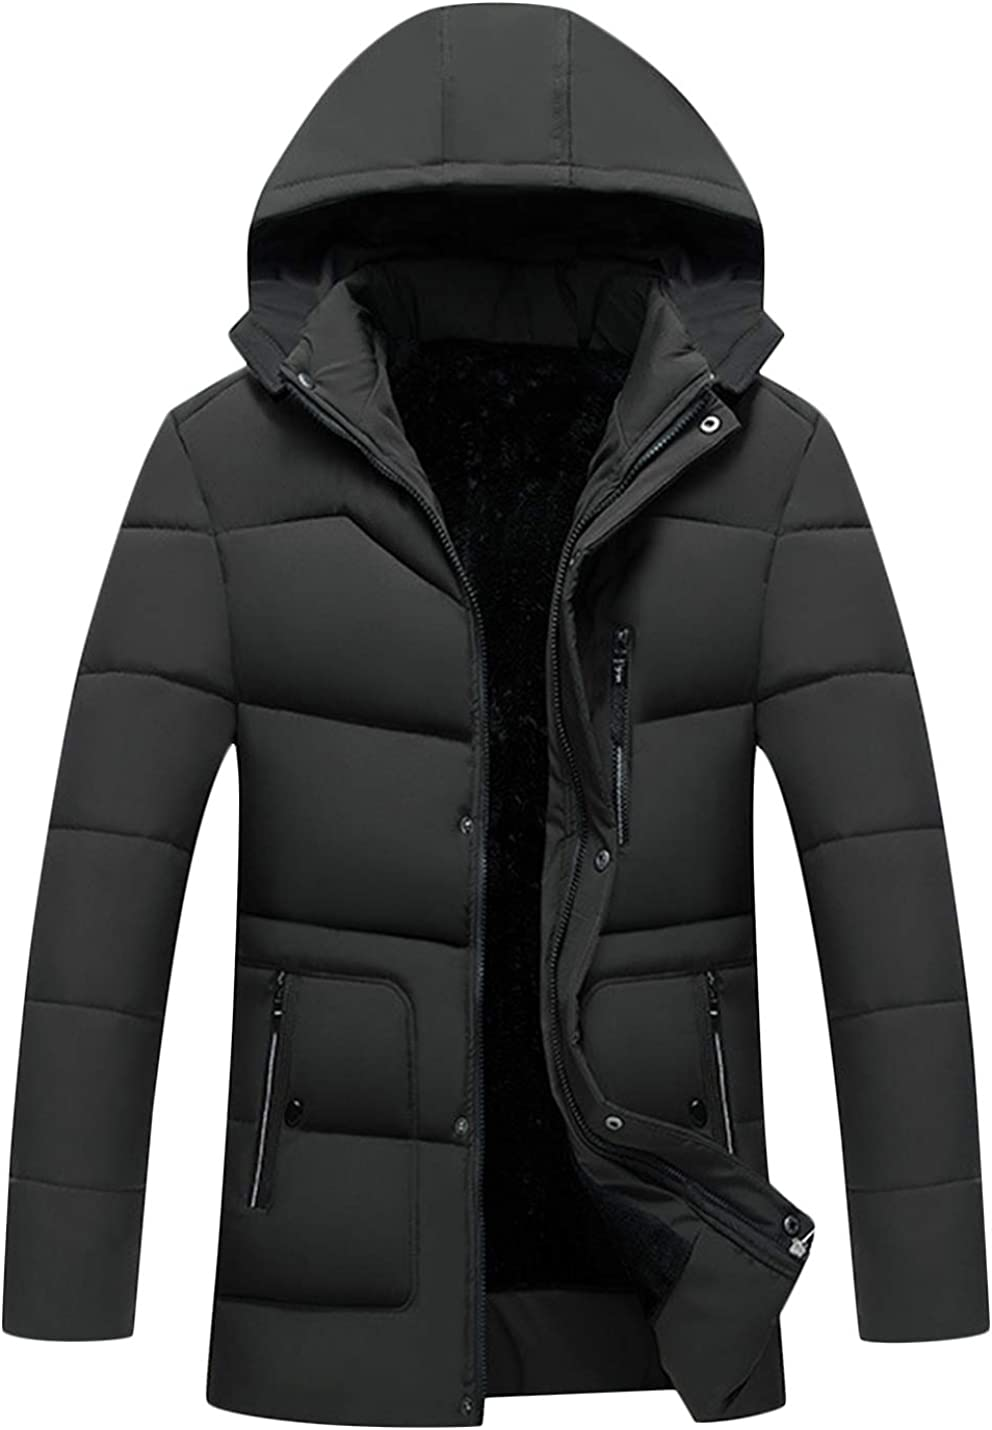 Springrain Men's Winter Warm Padded Sherpa Lined Jacket Coat with Removable Hood